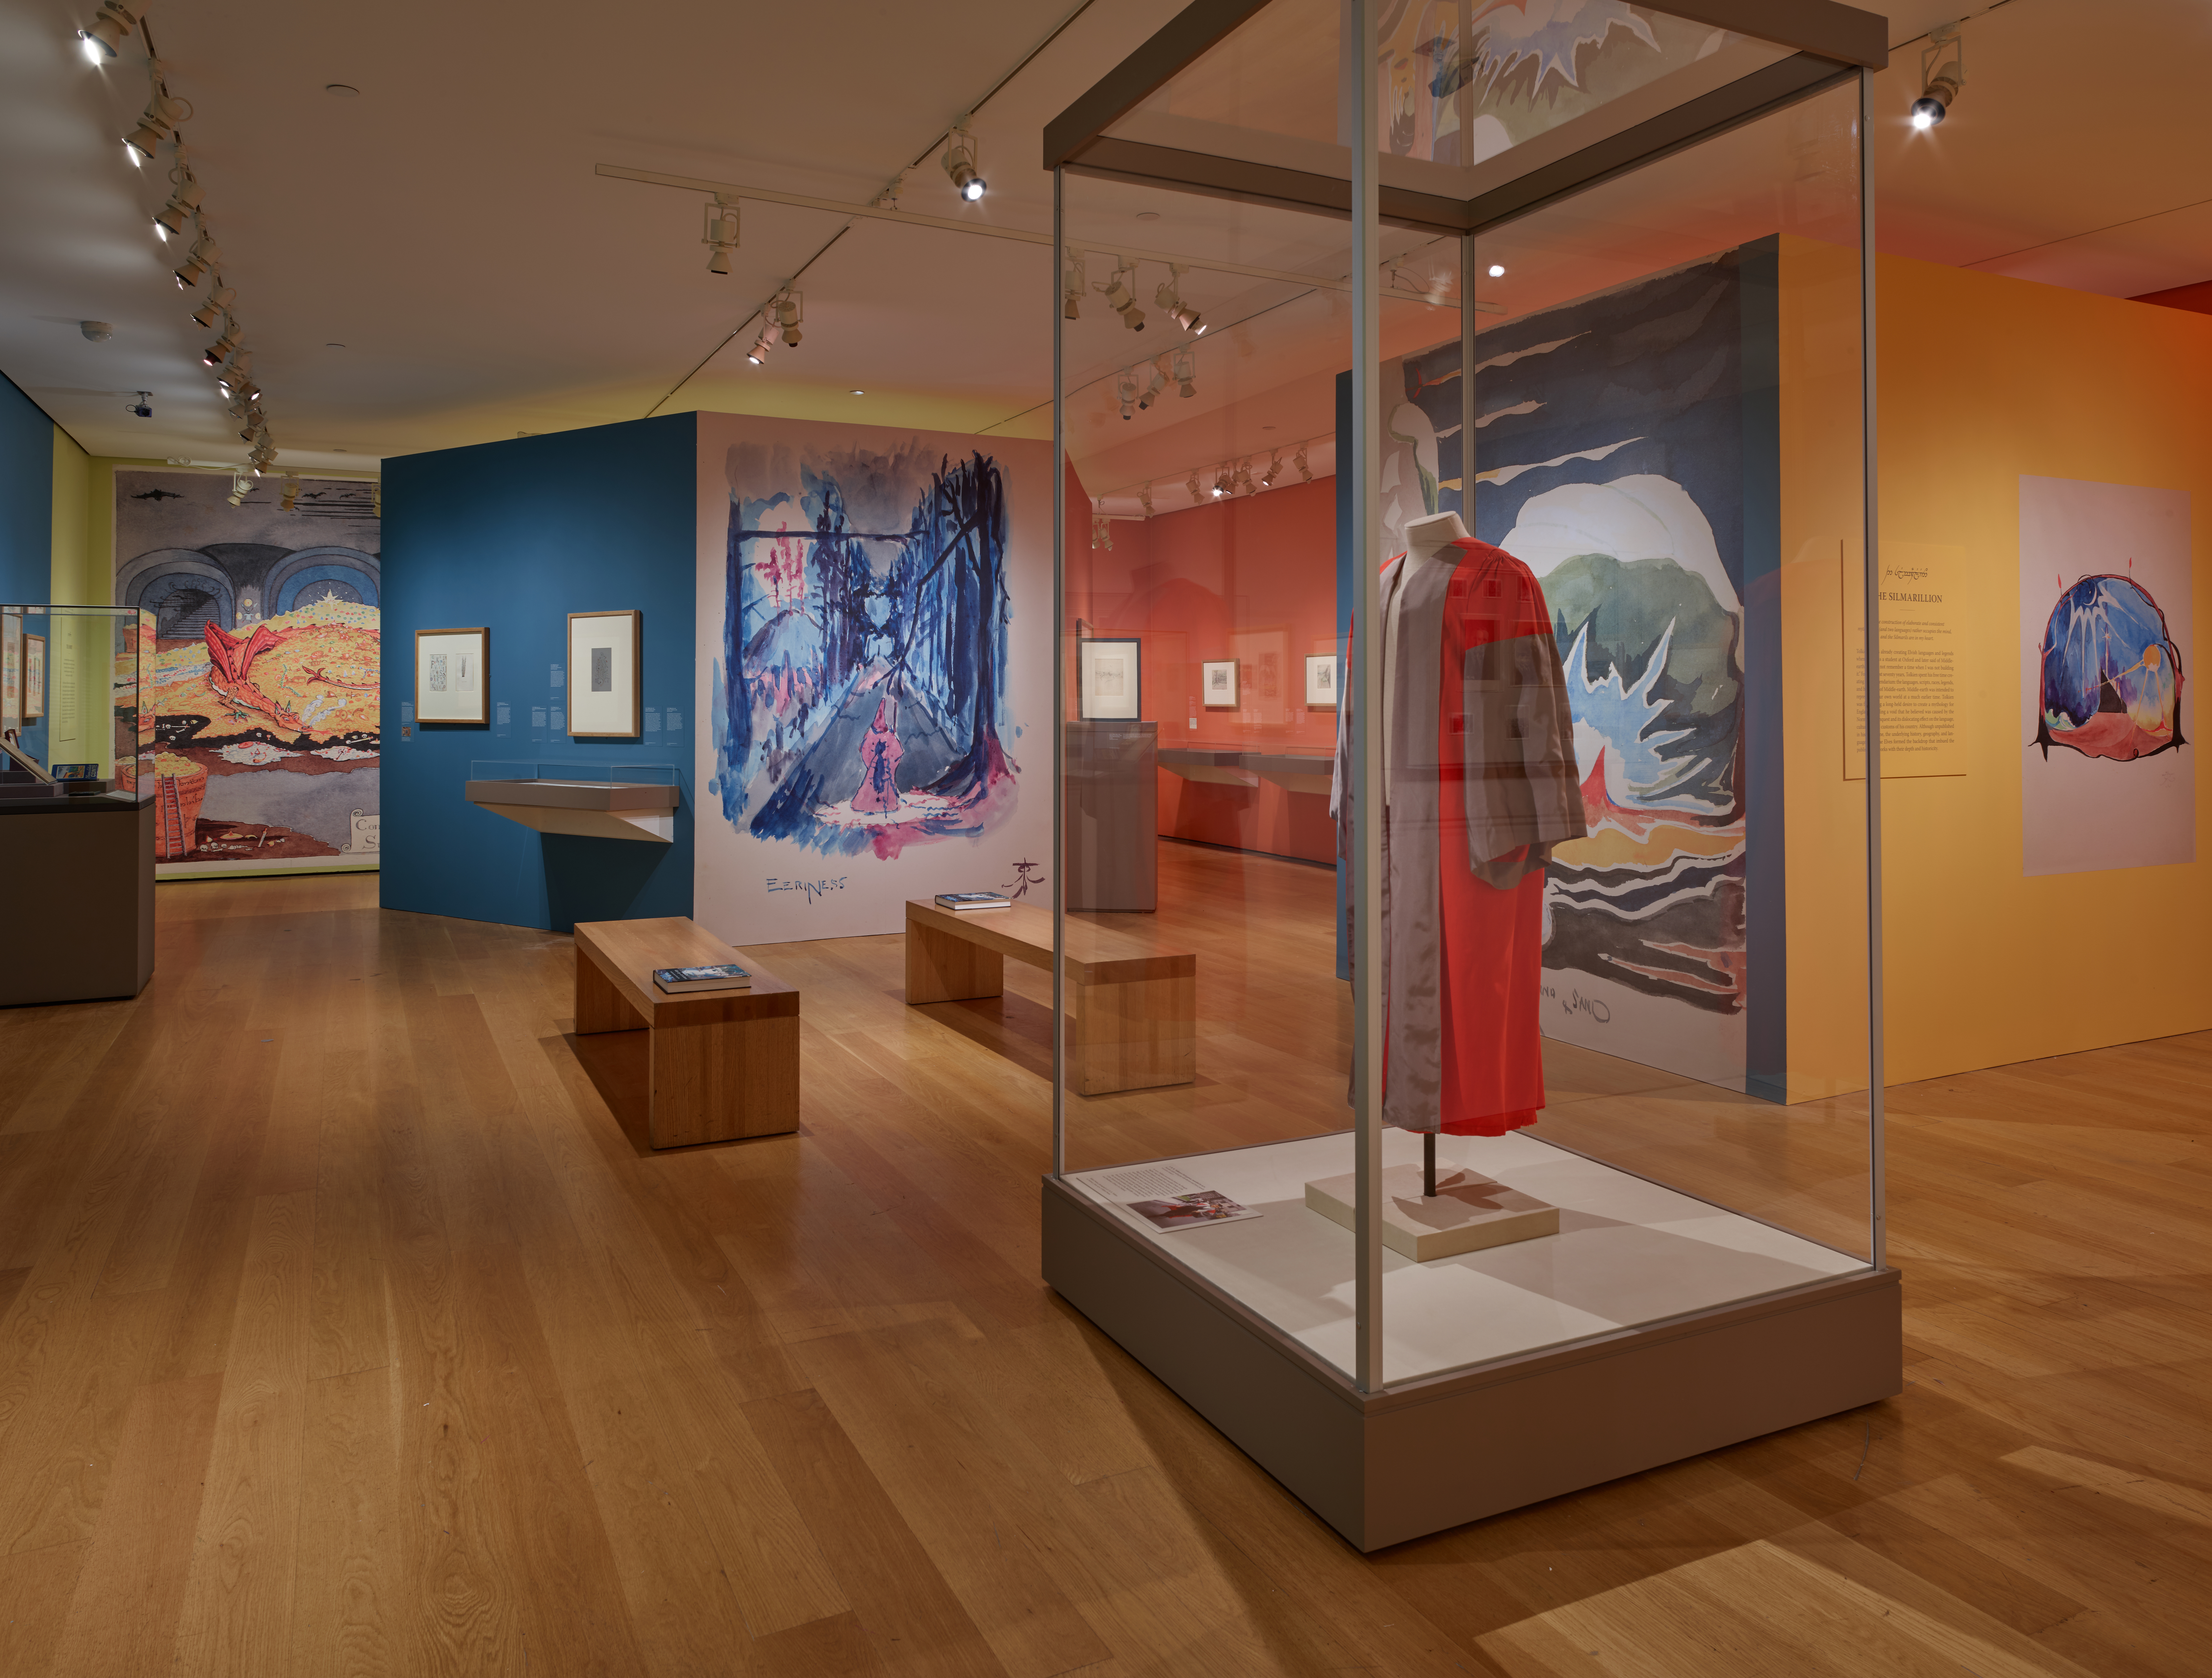 Tolkien: Maker of Middle-earth. The Morgan Library & Museum. Photography by Graham S. Haber.